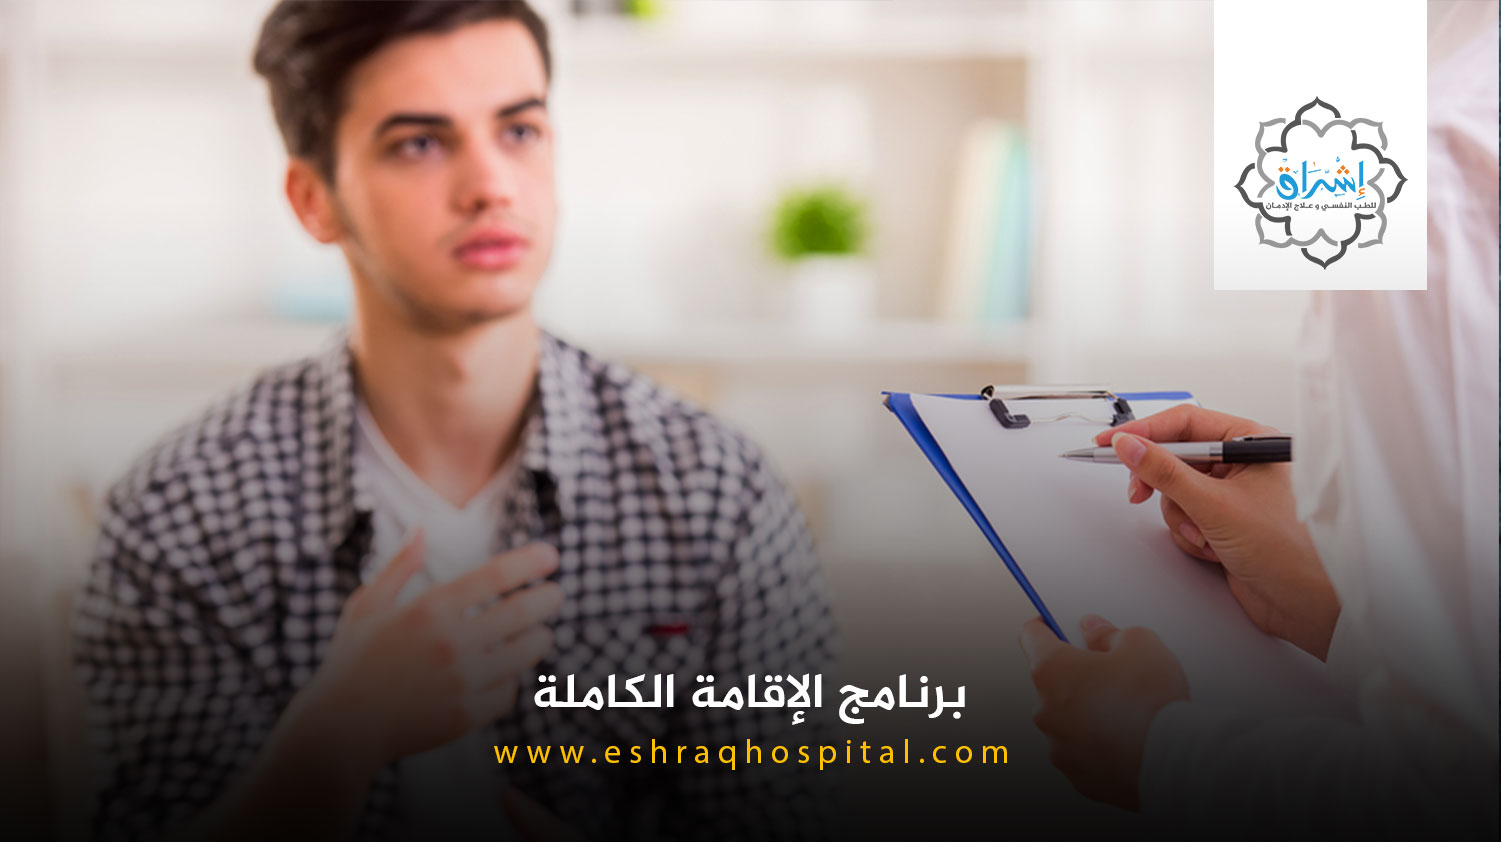 https://eshraqhospital.com/treatment-programs/برنامج-الإقامة-الكاملة/